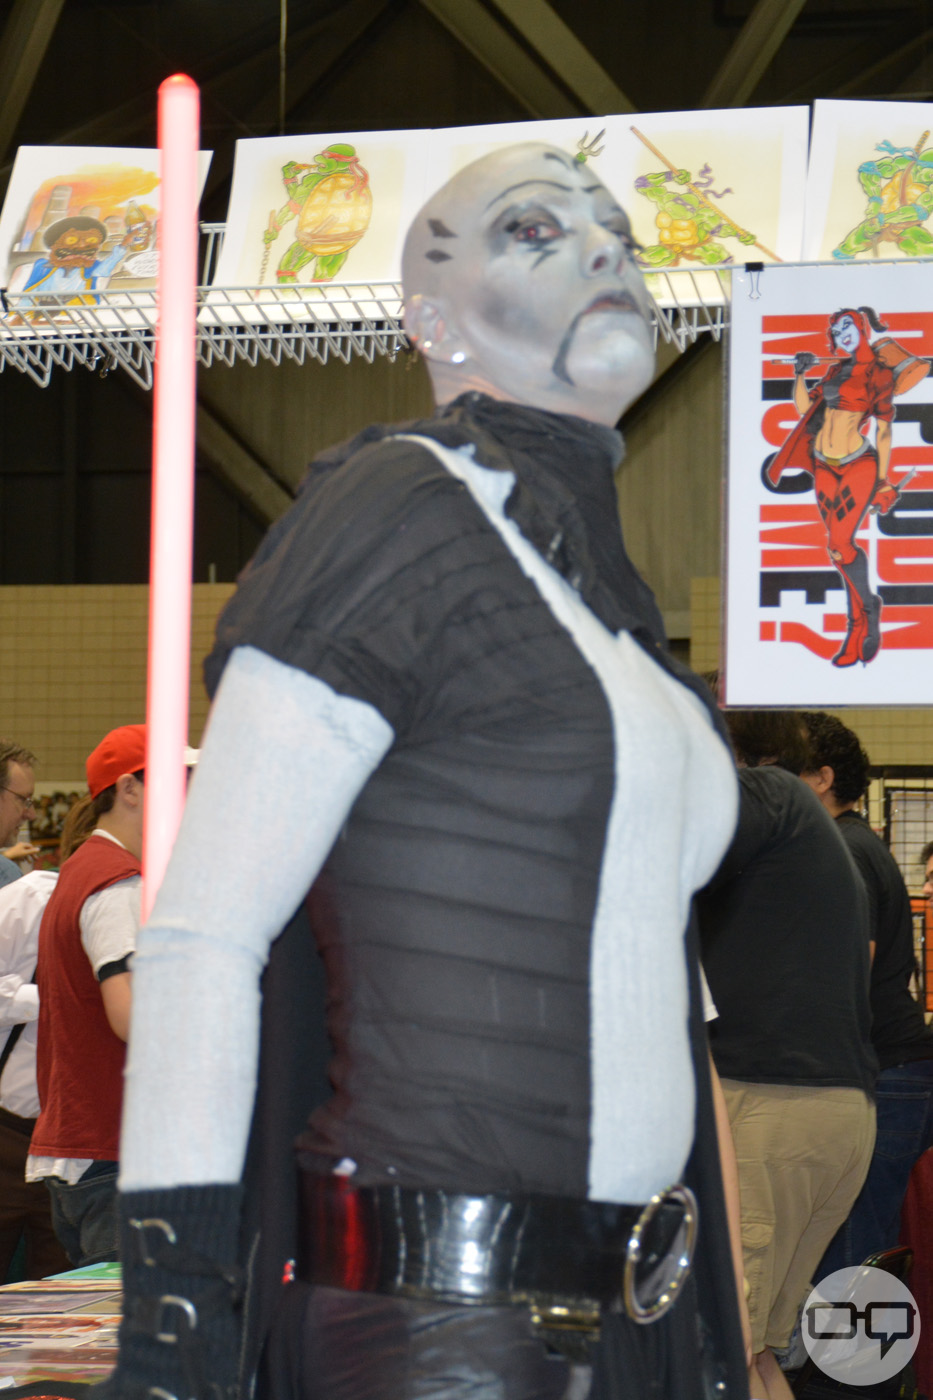 Planet-Comicon-2015-ProNerd-Cosplay-D1-4